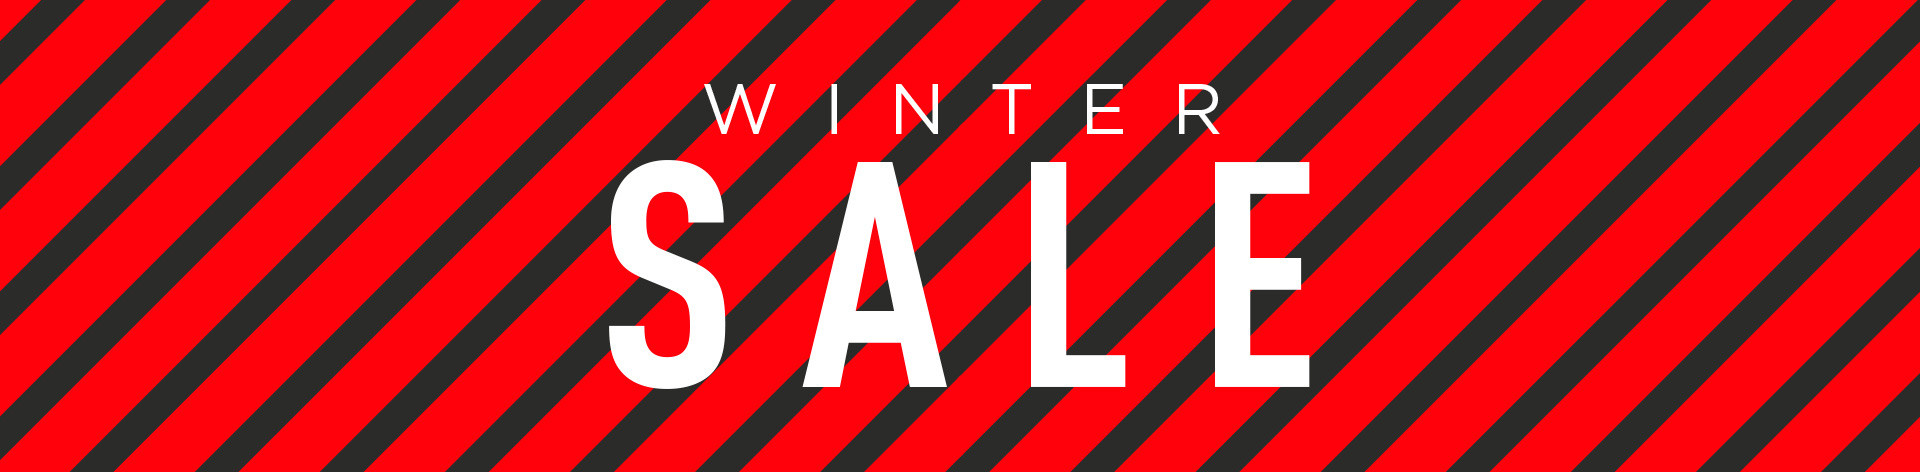 Dainese Winter Sale 2020 - Motorbike